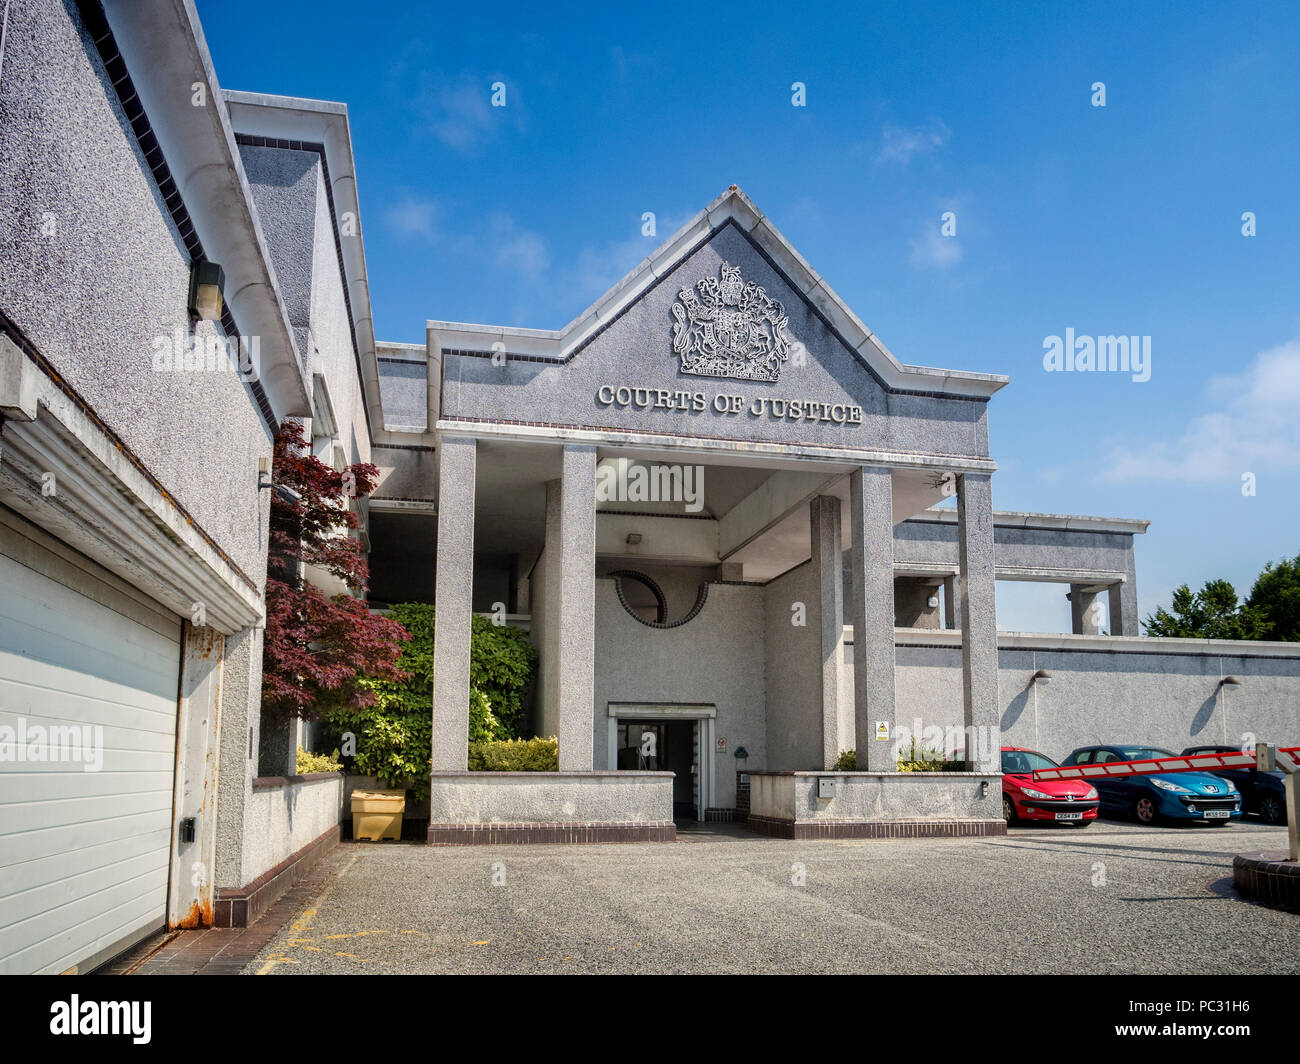 12 June 2018: Truro, Cornwall, UK - Law Court or Courts of Justice. - Stock Image